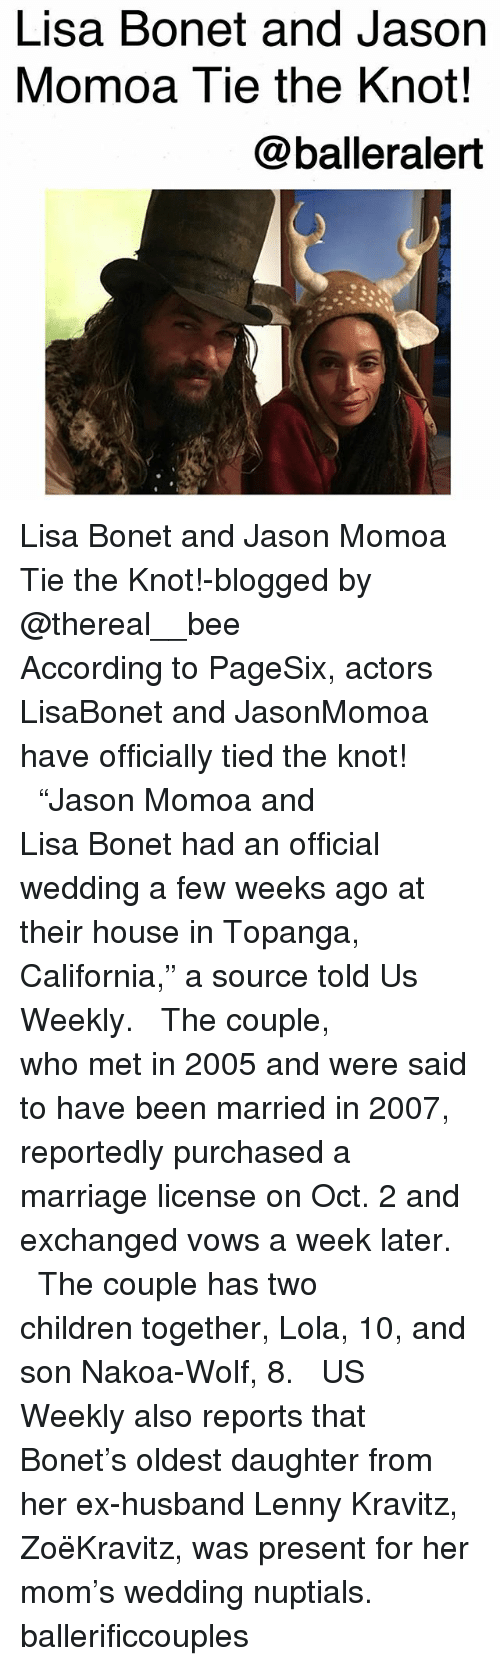 """Lenny: Lisa Bonet and Jason  Momoa Tie the Knot!  @balleralert Lisa Bonet and Jason Momoa Tie the Knot!-blogged by @thereal__bee ⠀⠀⠀⠀⠀⠀⠀⠀⠀ ⠀⠀ According to PageSix, actors LisaBonet and JasonMomoa have officially tied the knot! ⠀⠀⠀⠀⠀⠀⠀⠀⠀ ⠀⠀ """"Jason Momoa and Lisa Bonet had an official wedding a few weeks ago at their house in Topanga, California,"""" a source told Us Weekly. ⠀⠀⠀⠀⠀⠀⠀⠀⠀ ⠀⠀ The couple, who met in 2005 and were said to have been married in 2007, reportedly purchased a marriage license on Oct. 2 and exchanged vows a week later. ⠀⠀⠀⠀⠀⠀⠀⠀⠀ ⠀⠀ The couple has two children together, Lola, 10, and son Nakoa-Wolf, 8. ⠀⠀⠀⠀⠀⠀⠀⠀⠀ ⠀⠀ US Weekly also reports that Bonet's oldest daughter from her ex-husband Lenny Kravitz, ZoëKravitz, was present for her mom's wedding nuptials. ballerificcouples"""